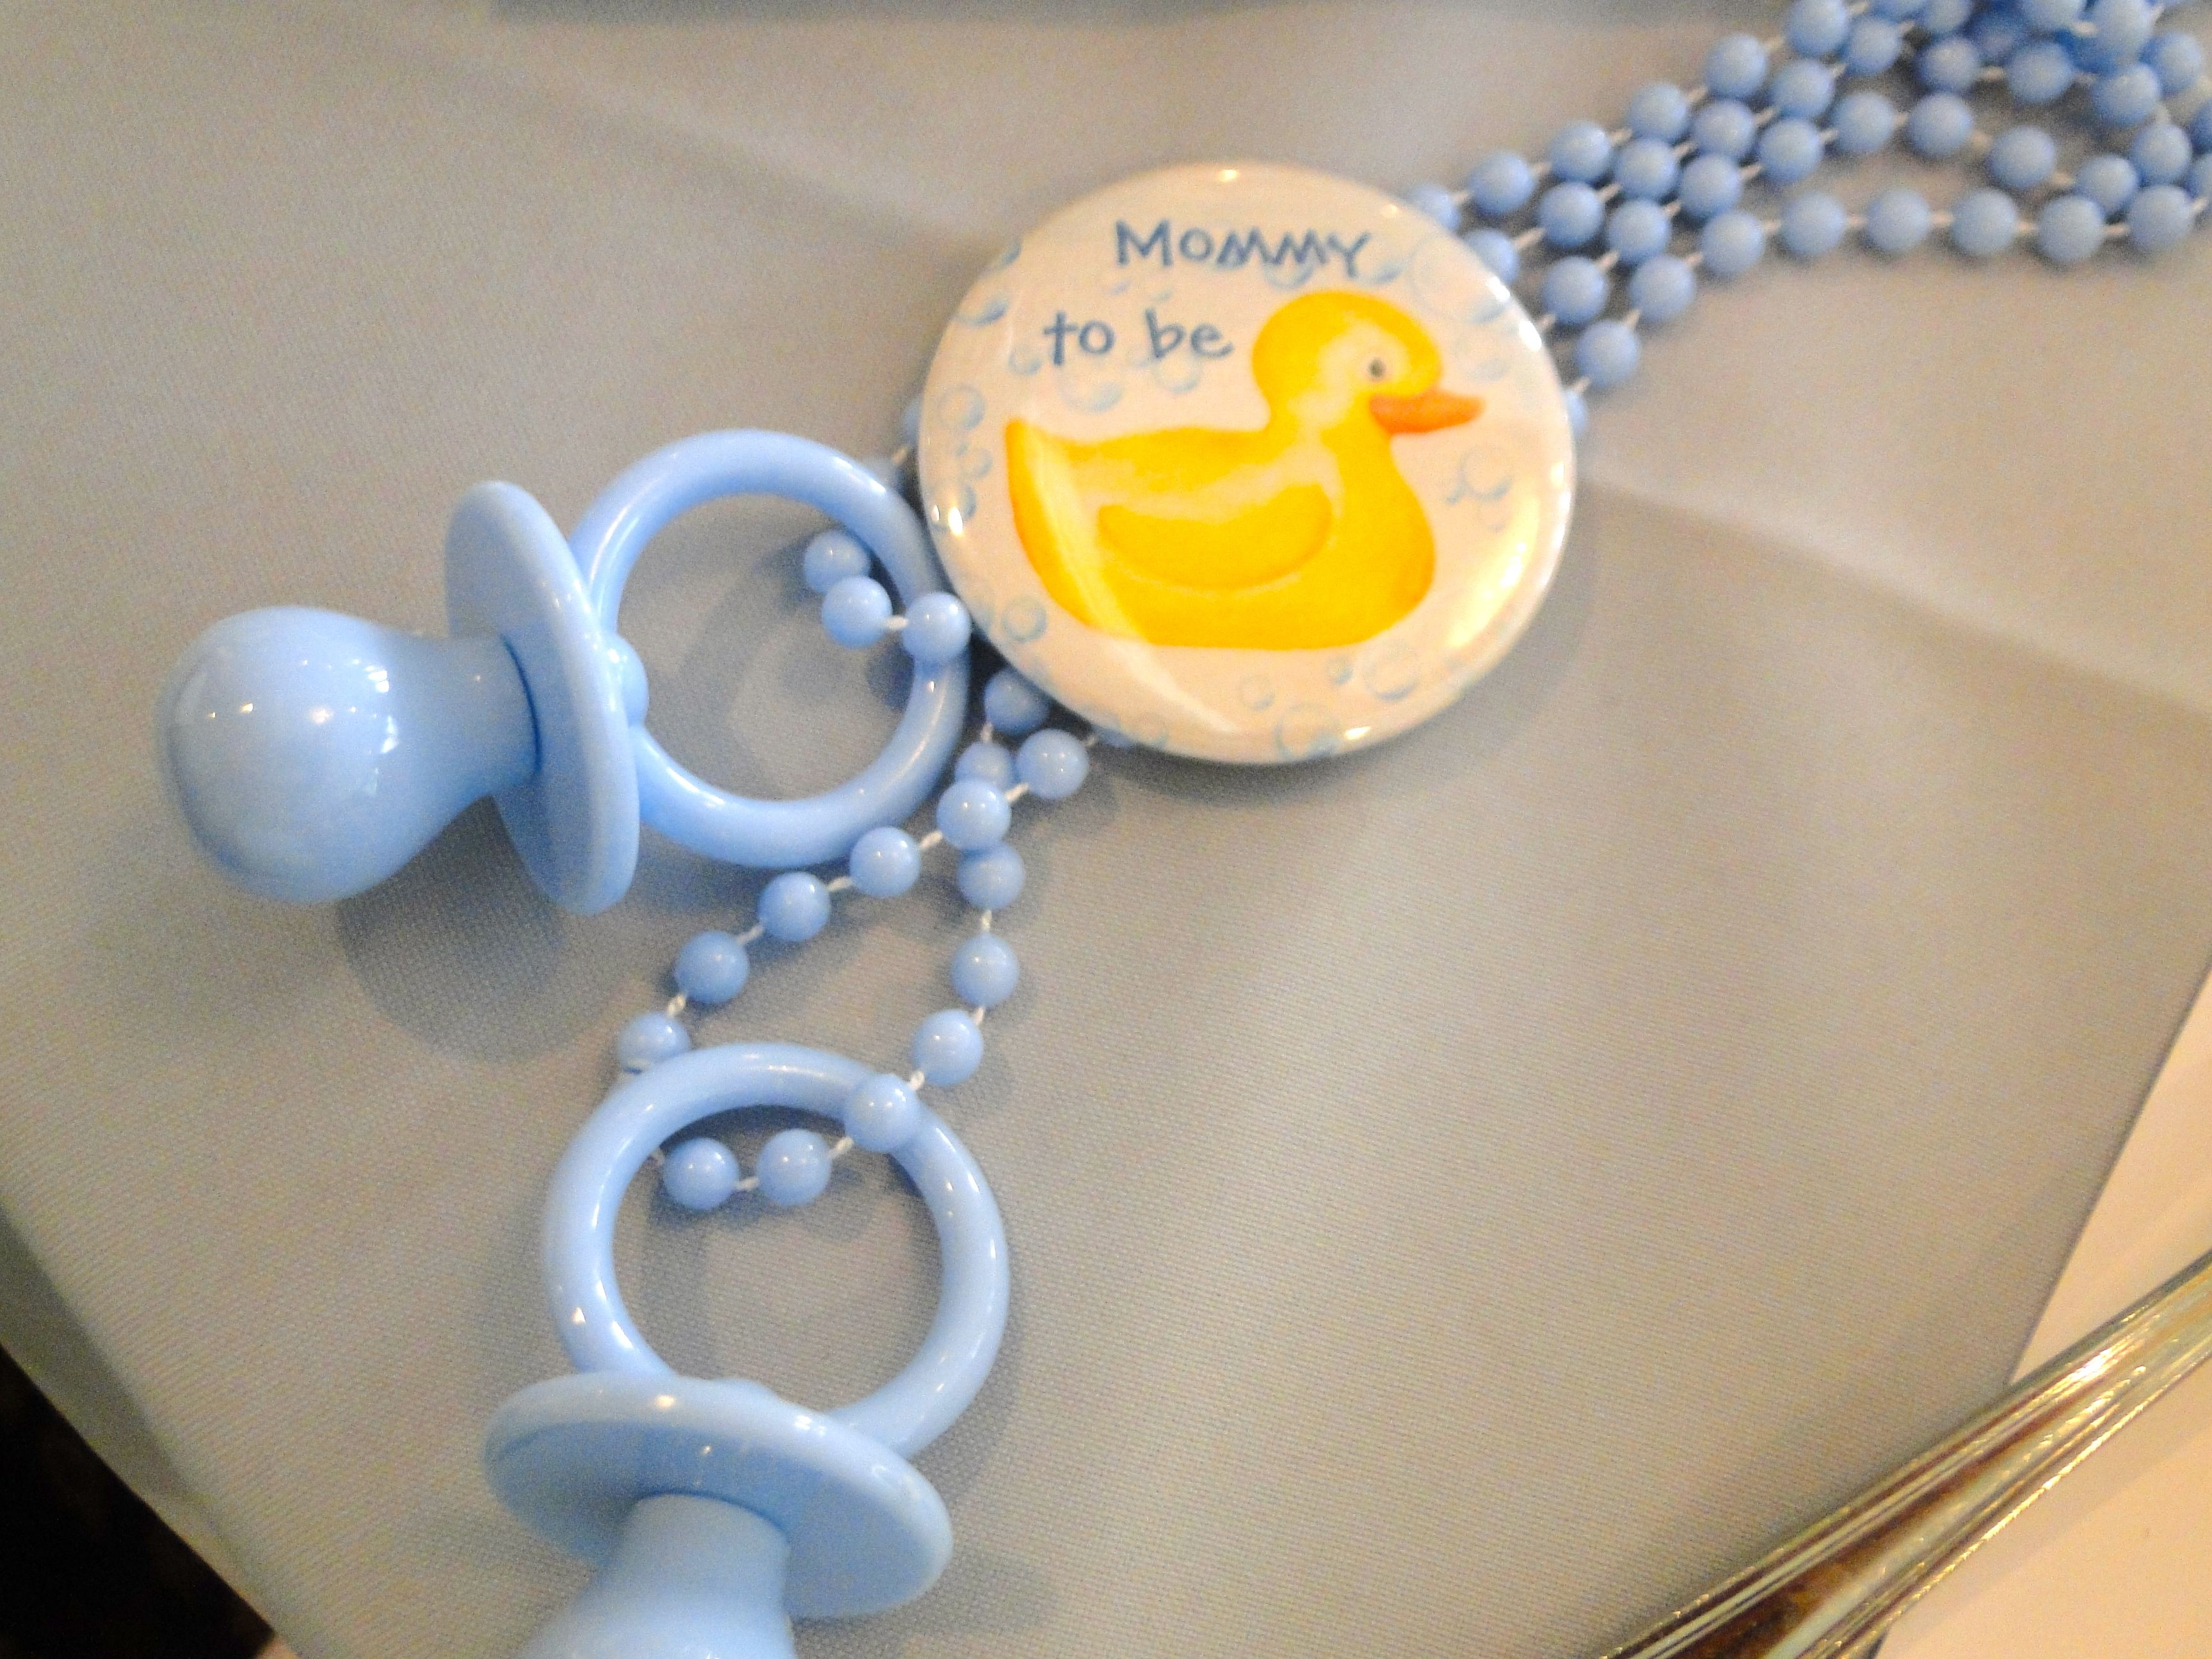 Rubber Ducky Baby Shower for Boy. Yellow and Blue colors. Rubber Ducky Decor created by Cathy Sattler.